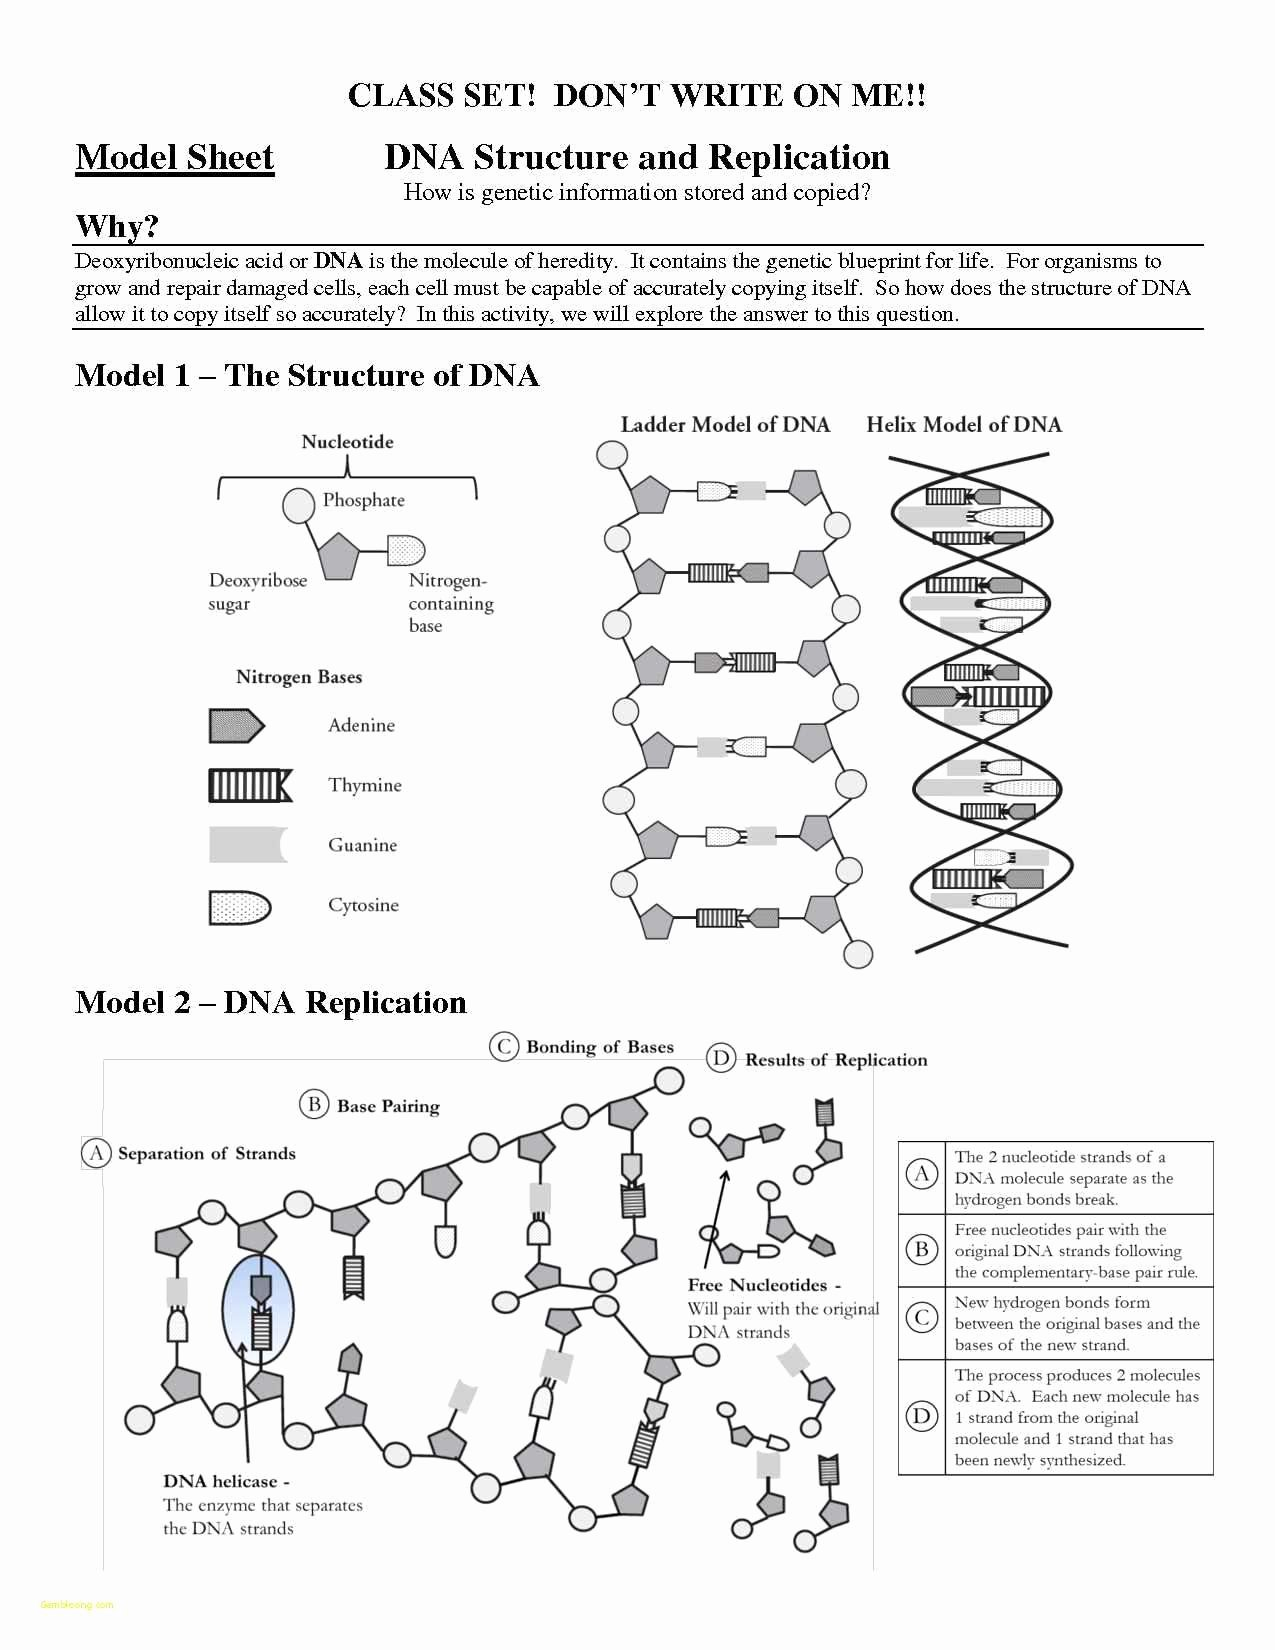 Dna Mutations Practice Worksheet Answers Lovely Dna Mutations Practice Worksheet Worksheet Idea Template